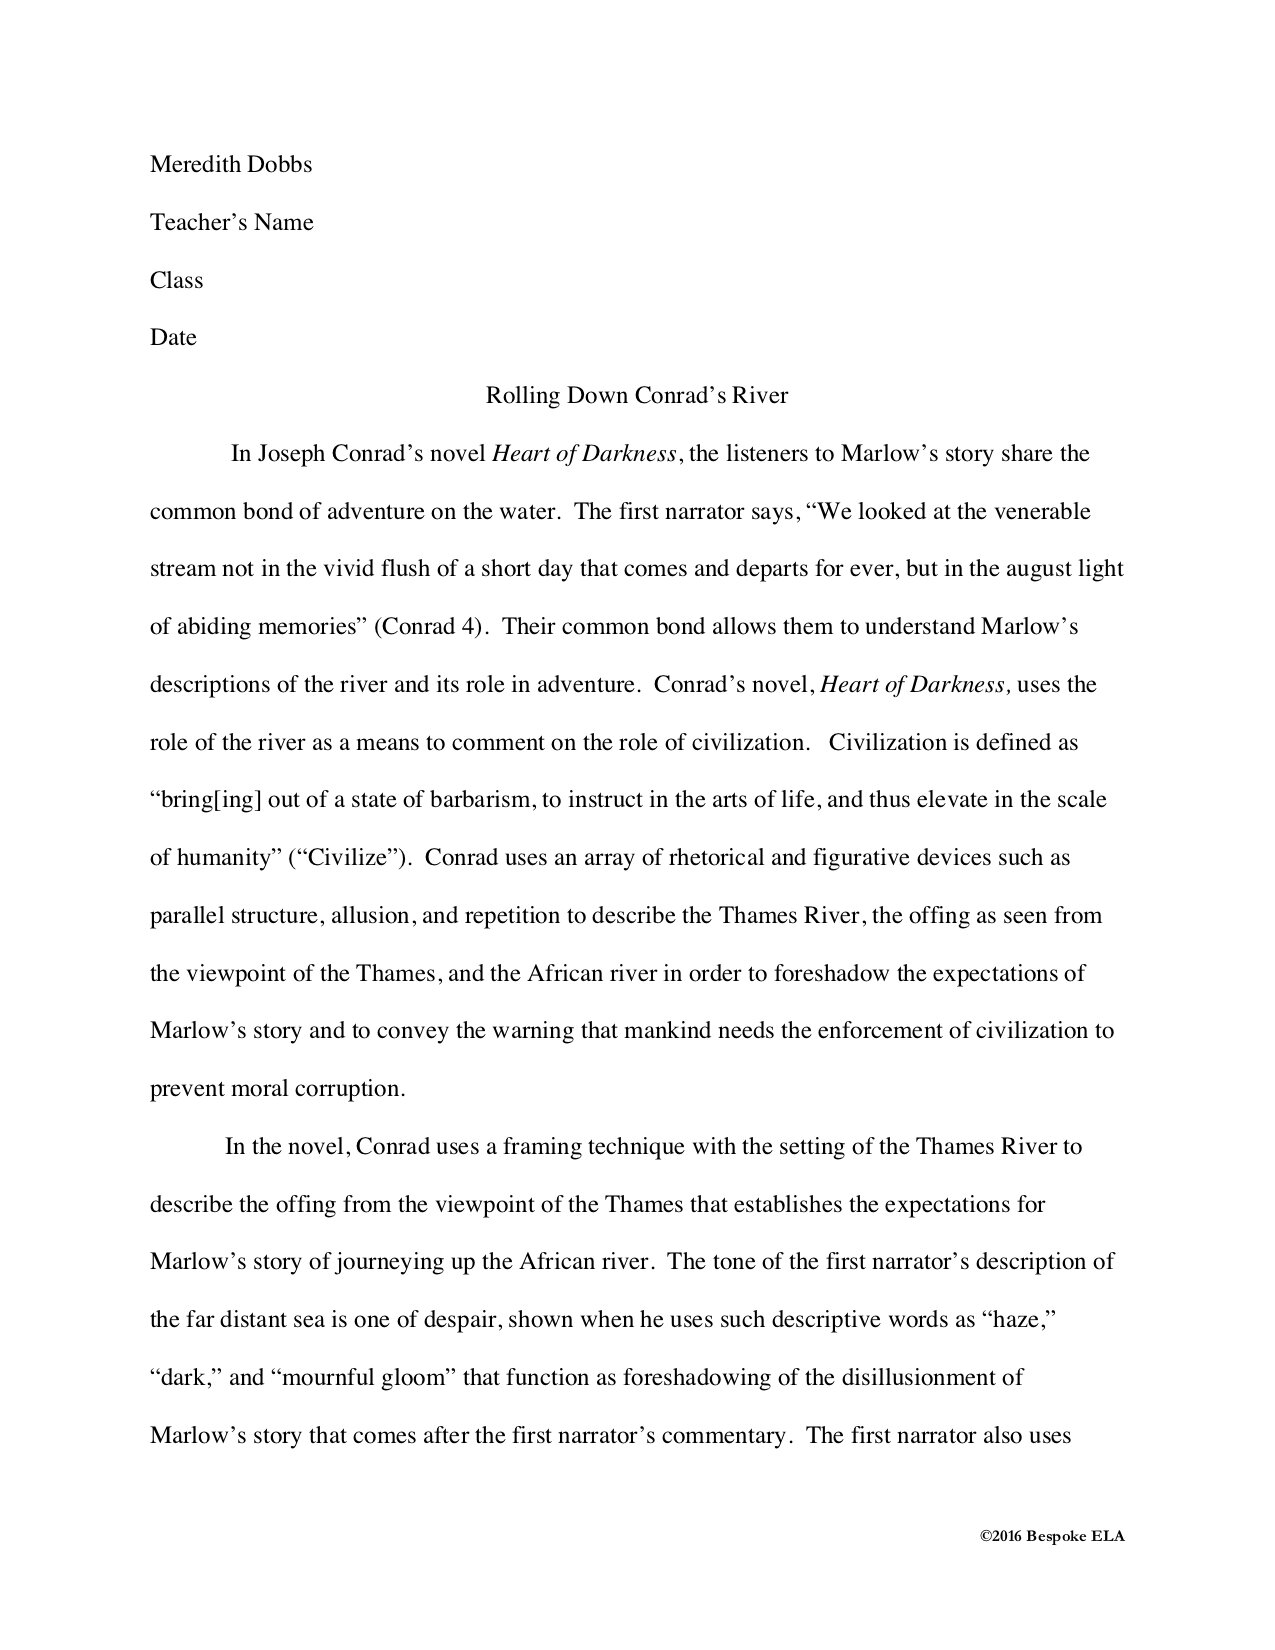 I Need Help Writing An Analitical Paper